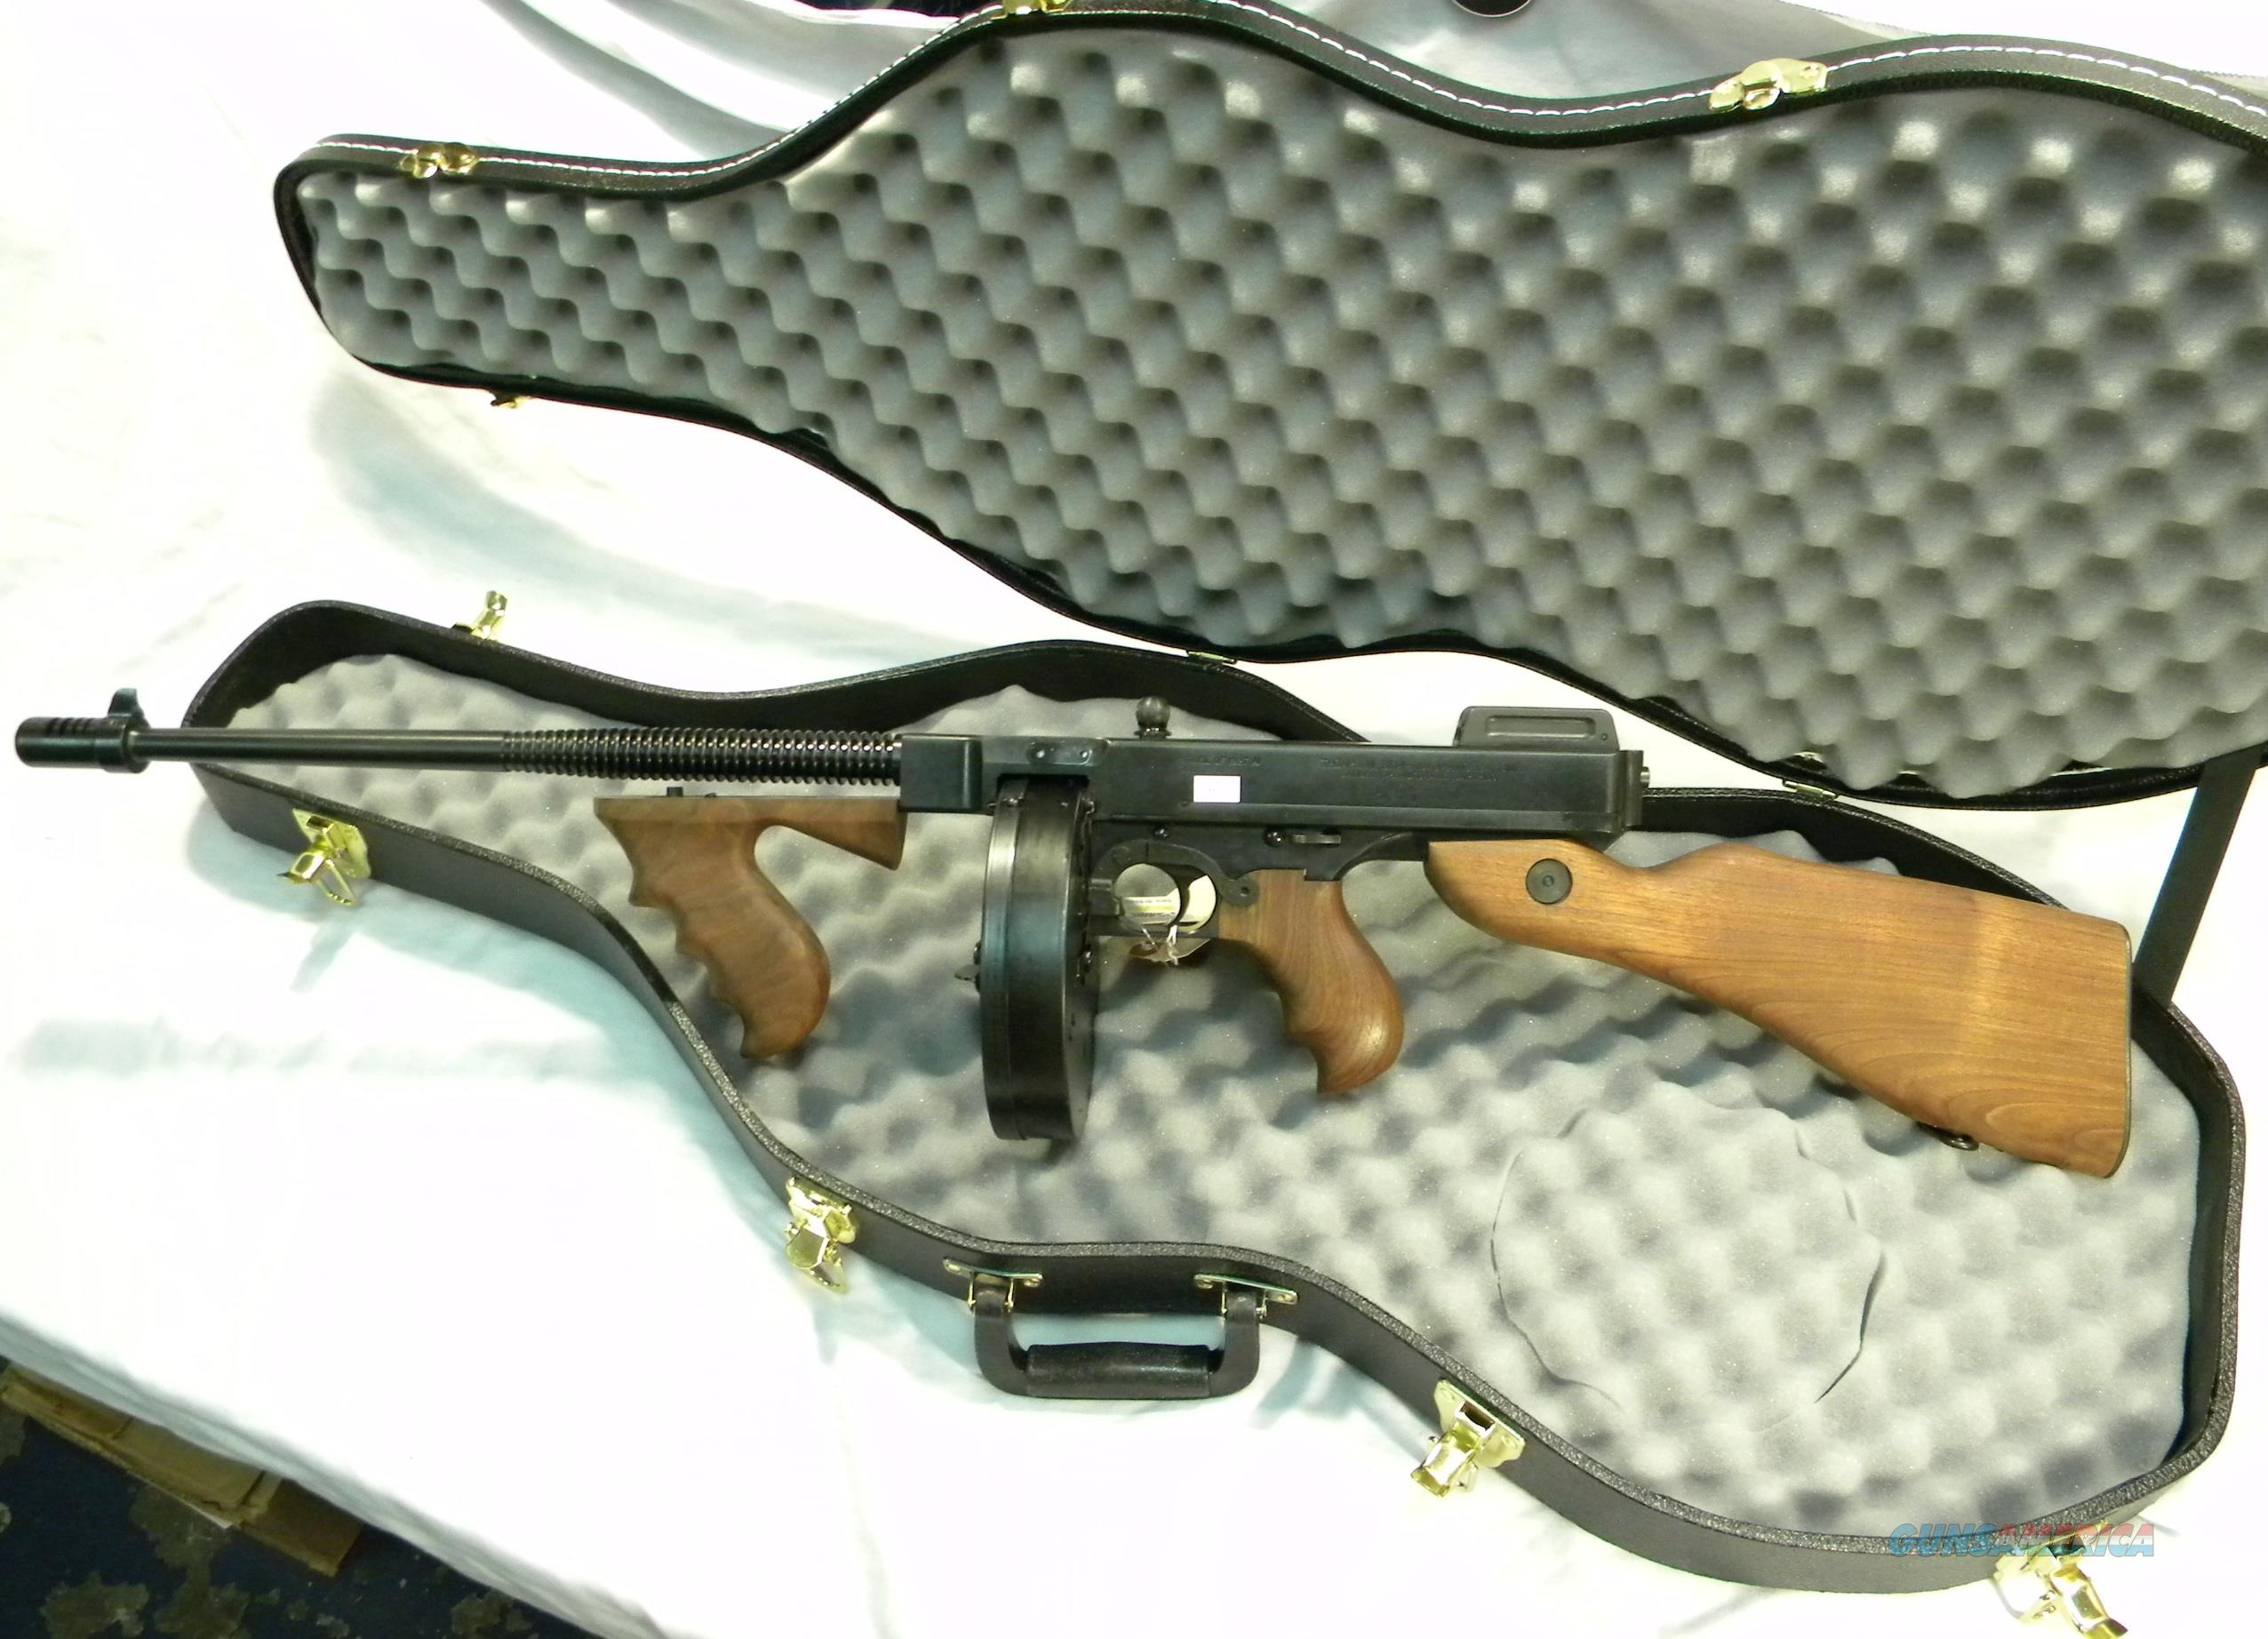 Tommy Gun In A Violin Case! Thompson 1927-A1  45 ACP Semi-Auto Rifle, With  Violin Case And One 20-R